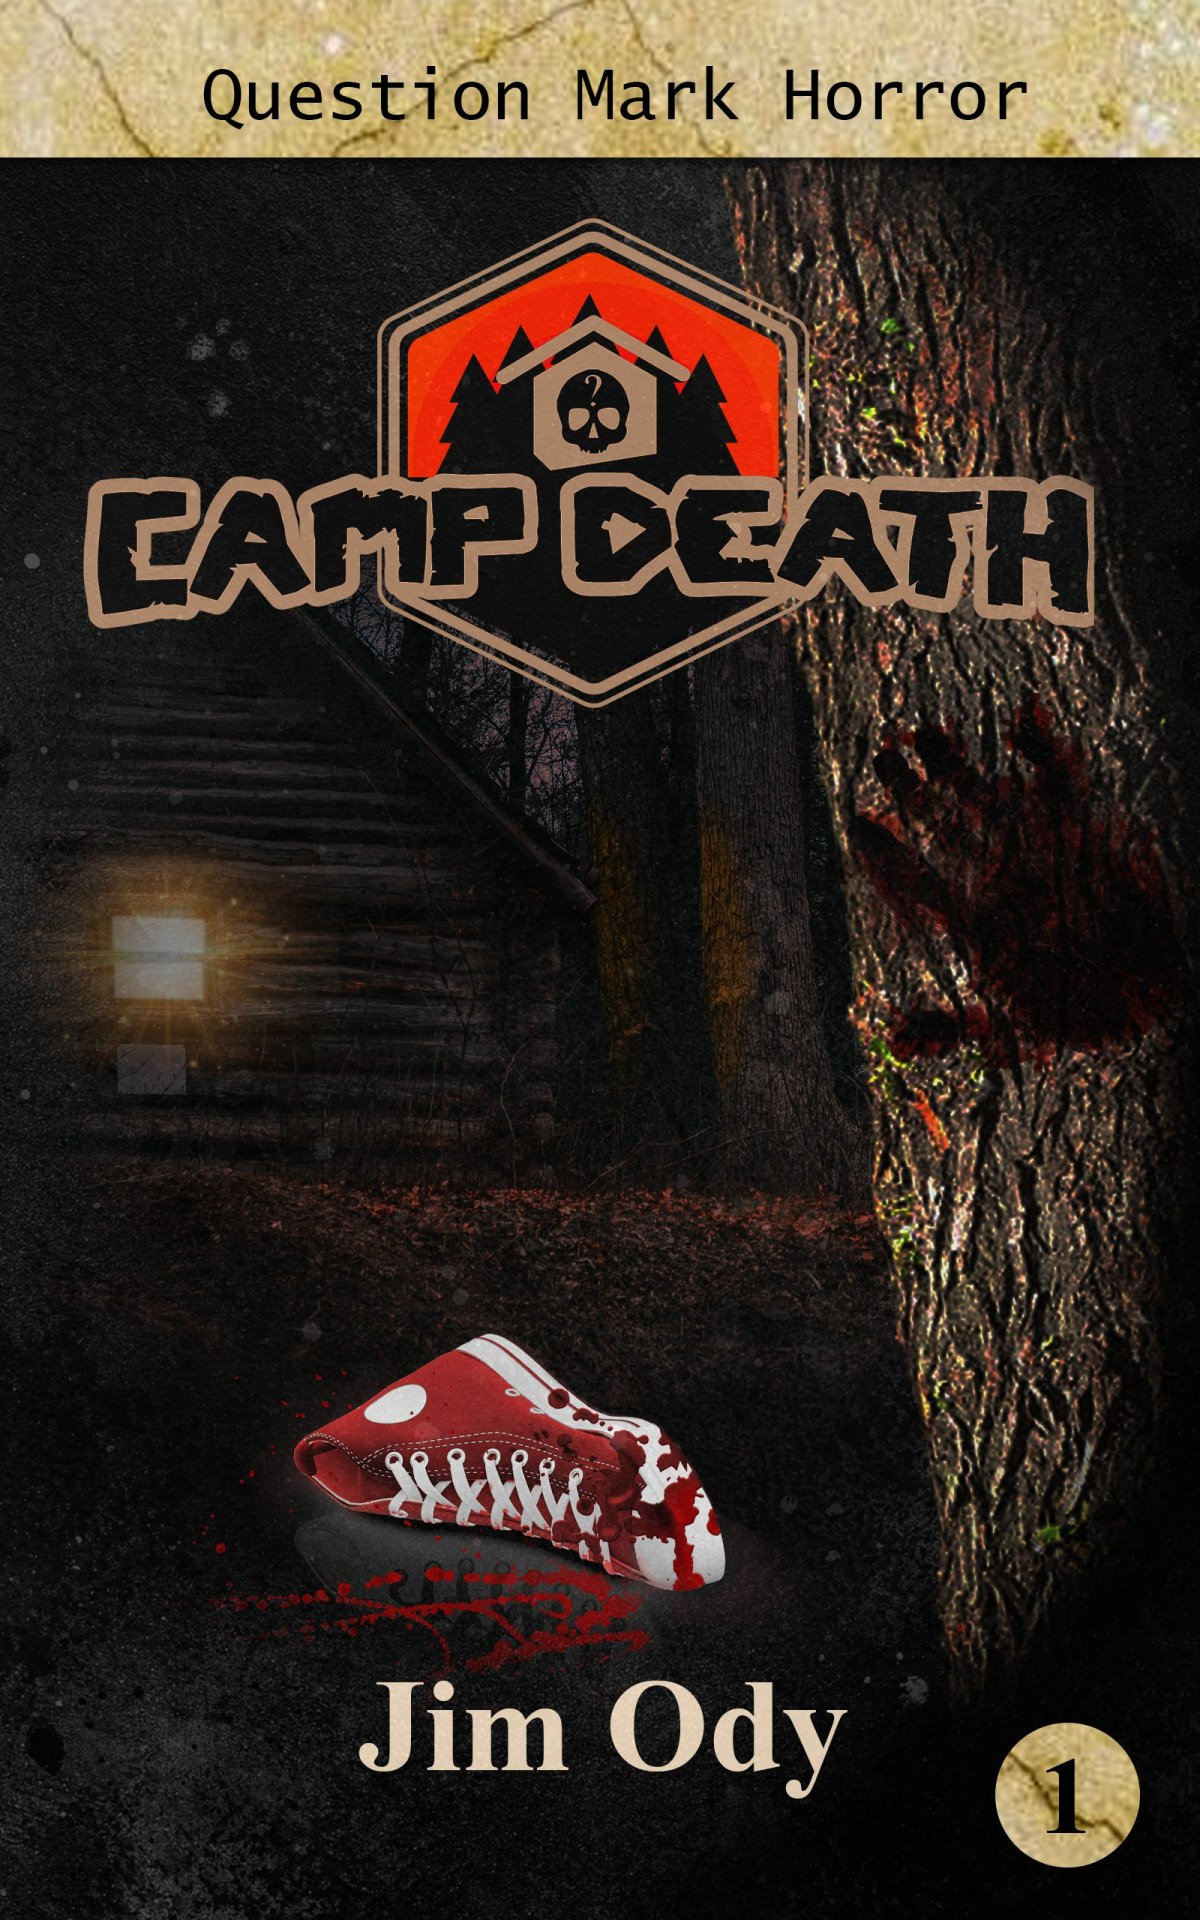 Camp Death by Jim Ody QMP Horror Blog Tour (QMP Book #1) @Jim_Ody_Author @QuestionPress @zooloo2008  Hashtags #CampDeath #QMPHorror #QuestionMarkPress #ZooloosBookTours